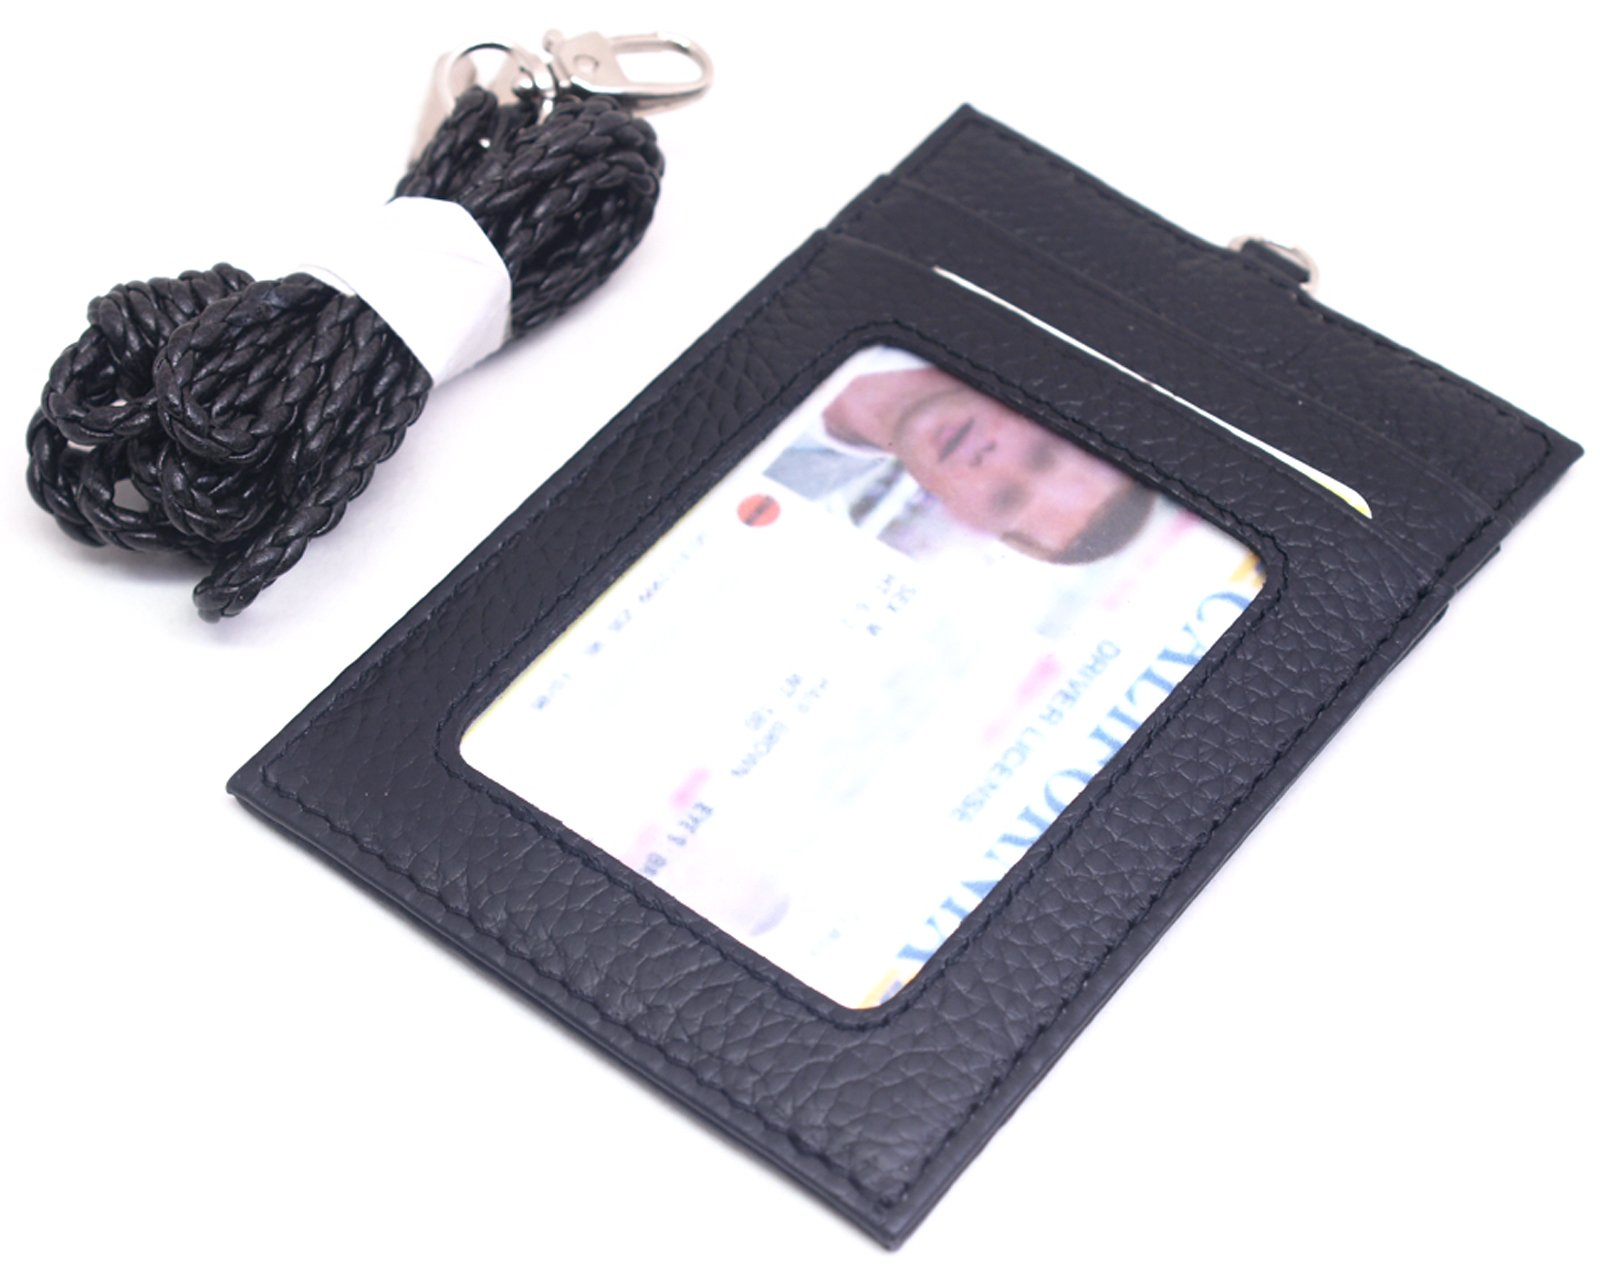 ENCACC Leather Slim Neck Wallet Business Id Card Badge Holder Lanyard Purse (Black EN27)